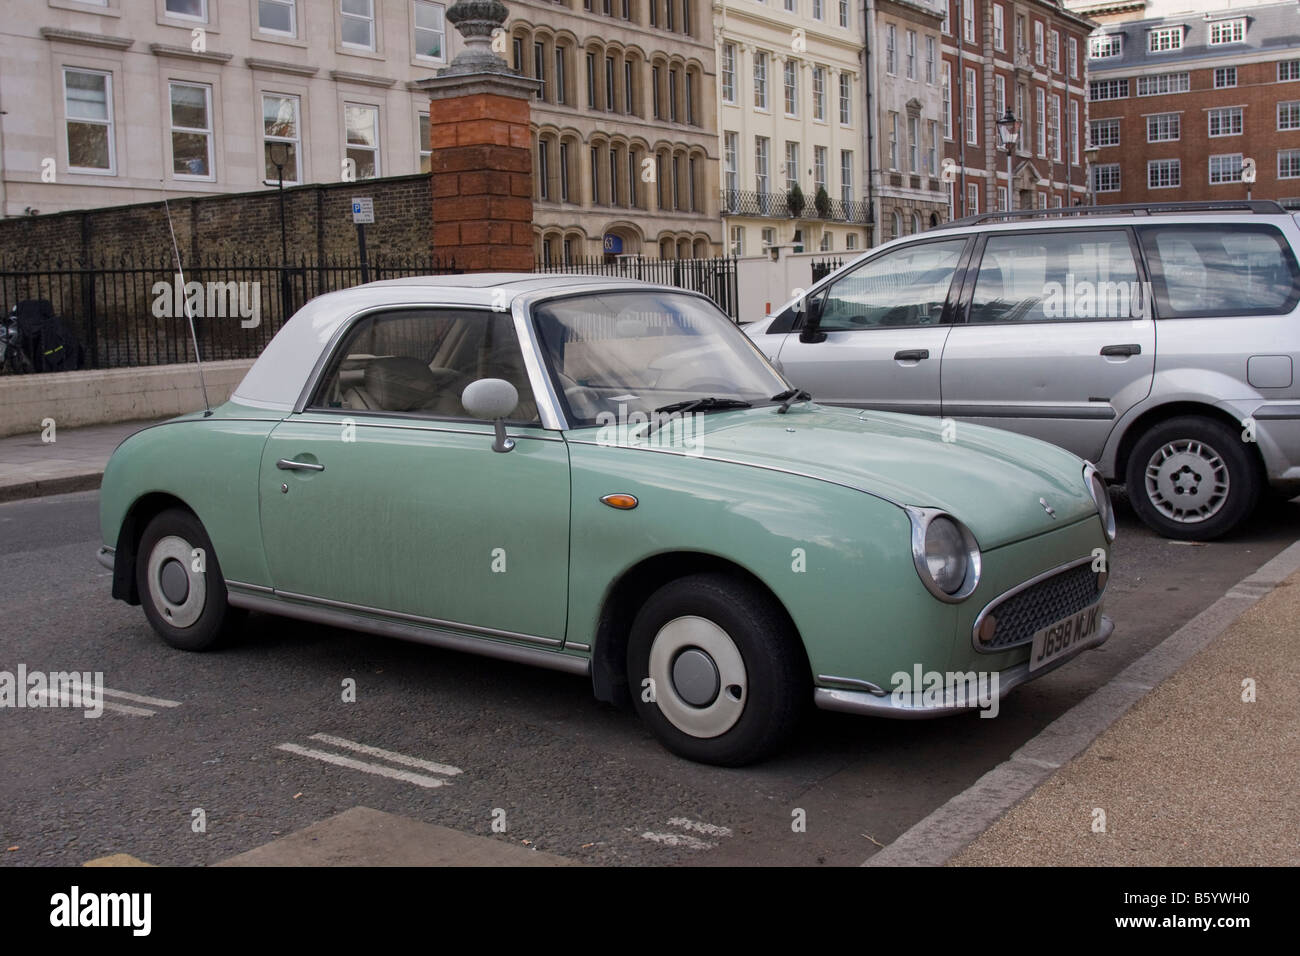 Green and white two tone Nissan Figaro classic cult car - Stock Image